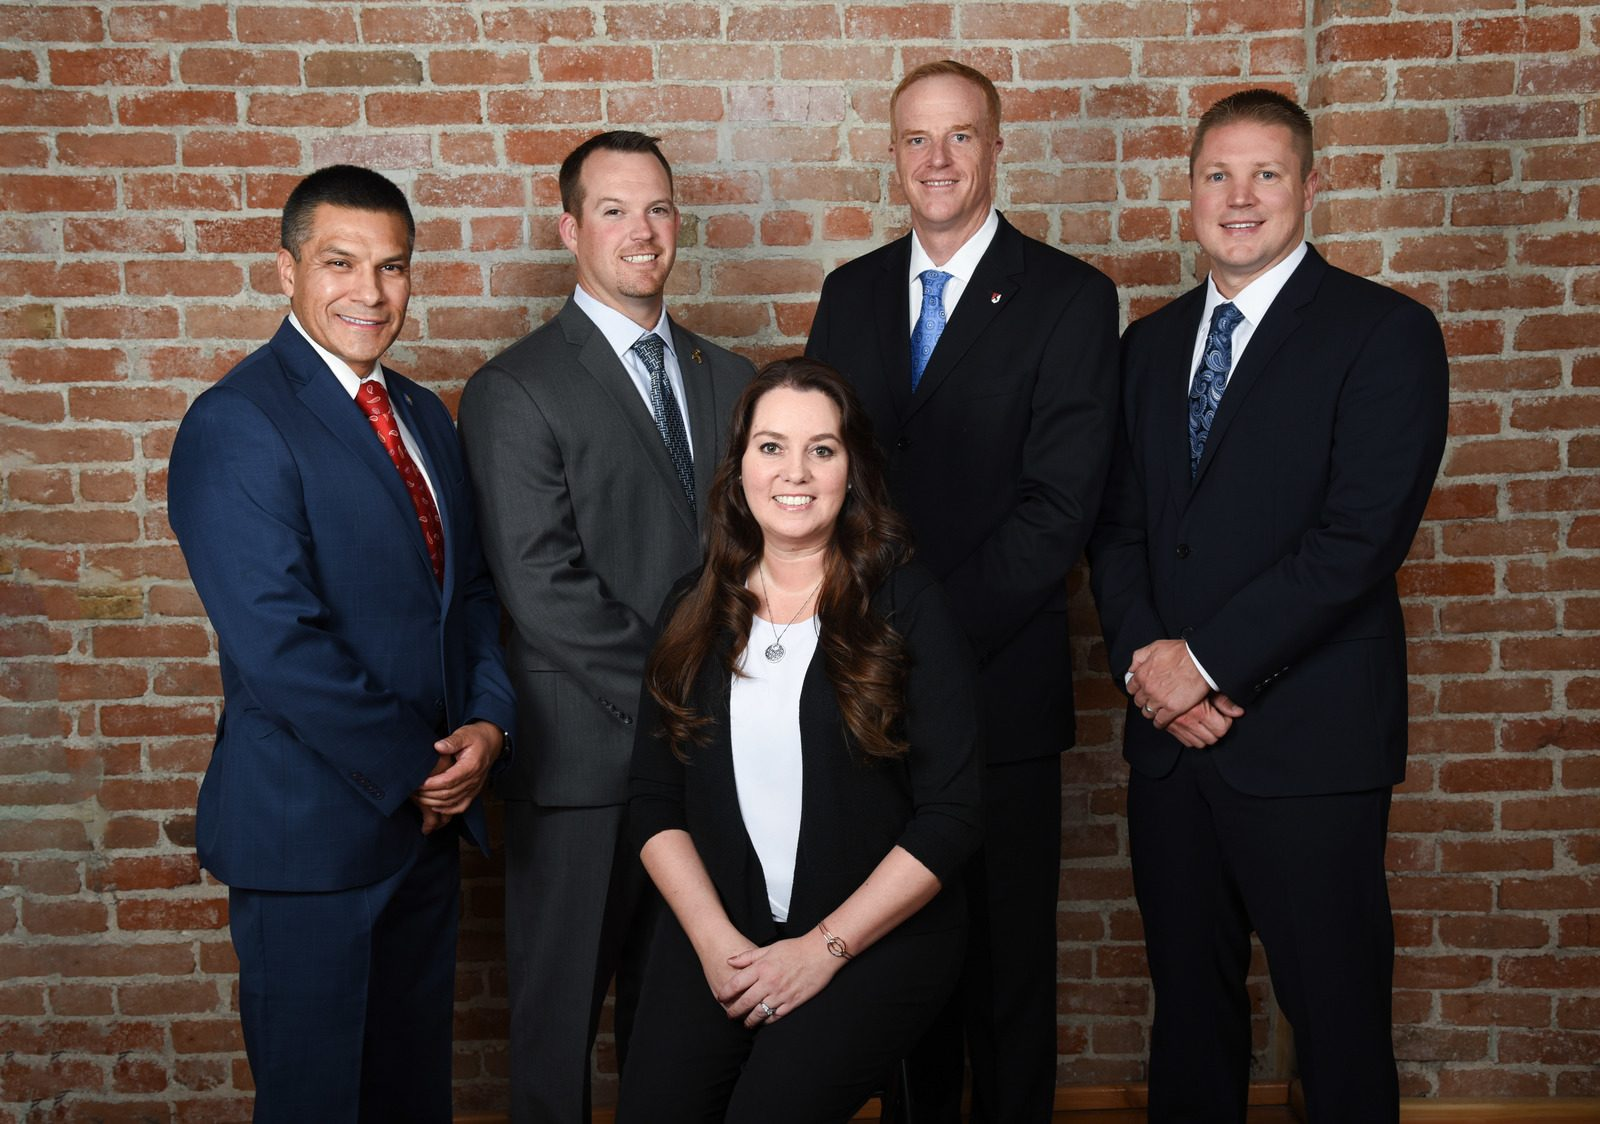 The Mountain West Group | Elko, NV | Morgan Stanley Wealth Management